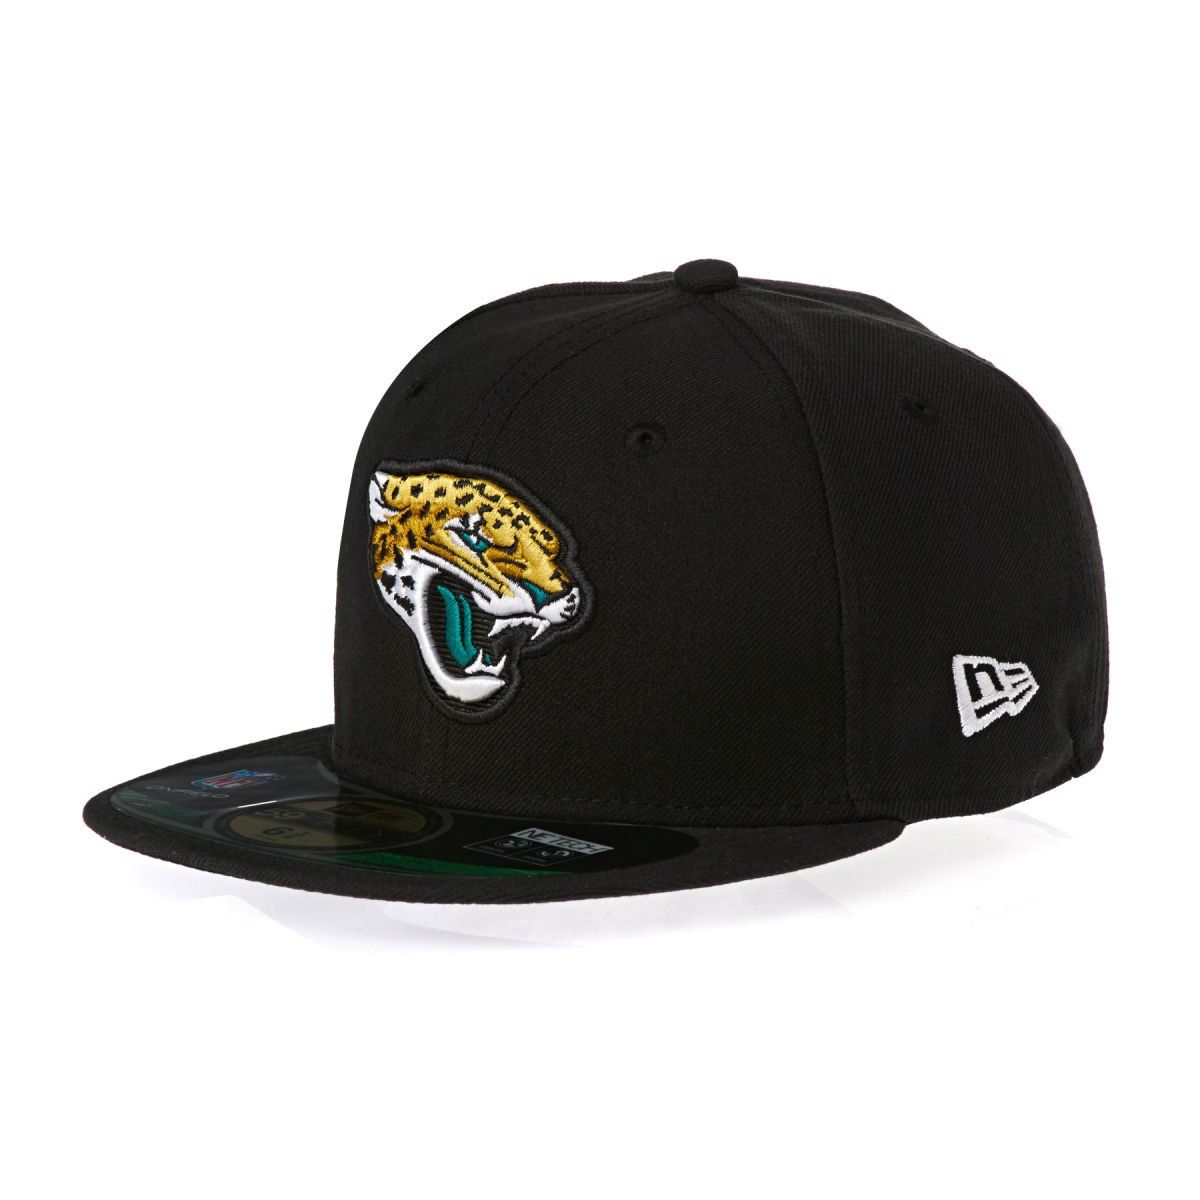 a1dba1bb53b Amazon.com   New Era NFL Jacksonville Jaguars 59Fifty Onfield Black Fitted  Youth Hat   6 3 8   Clothing